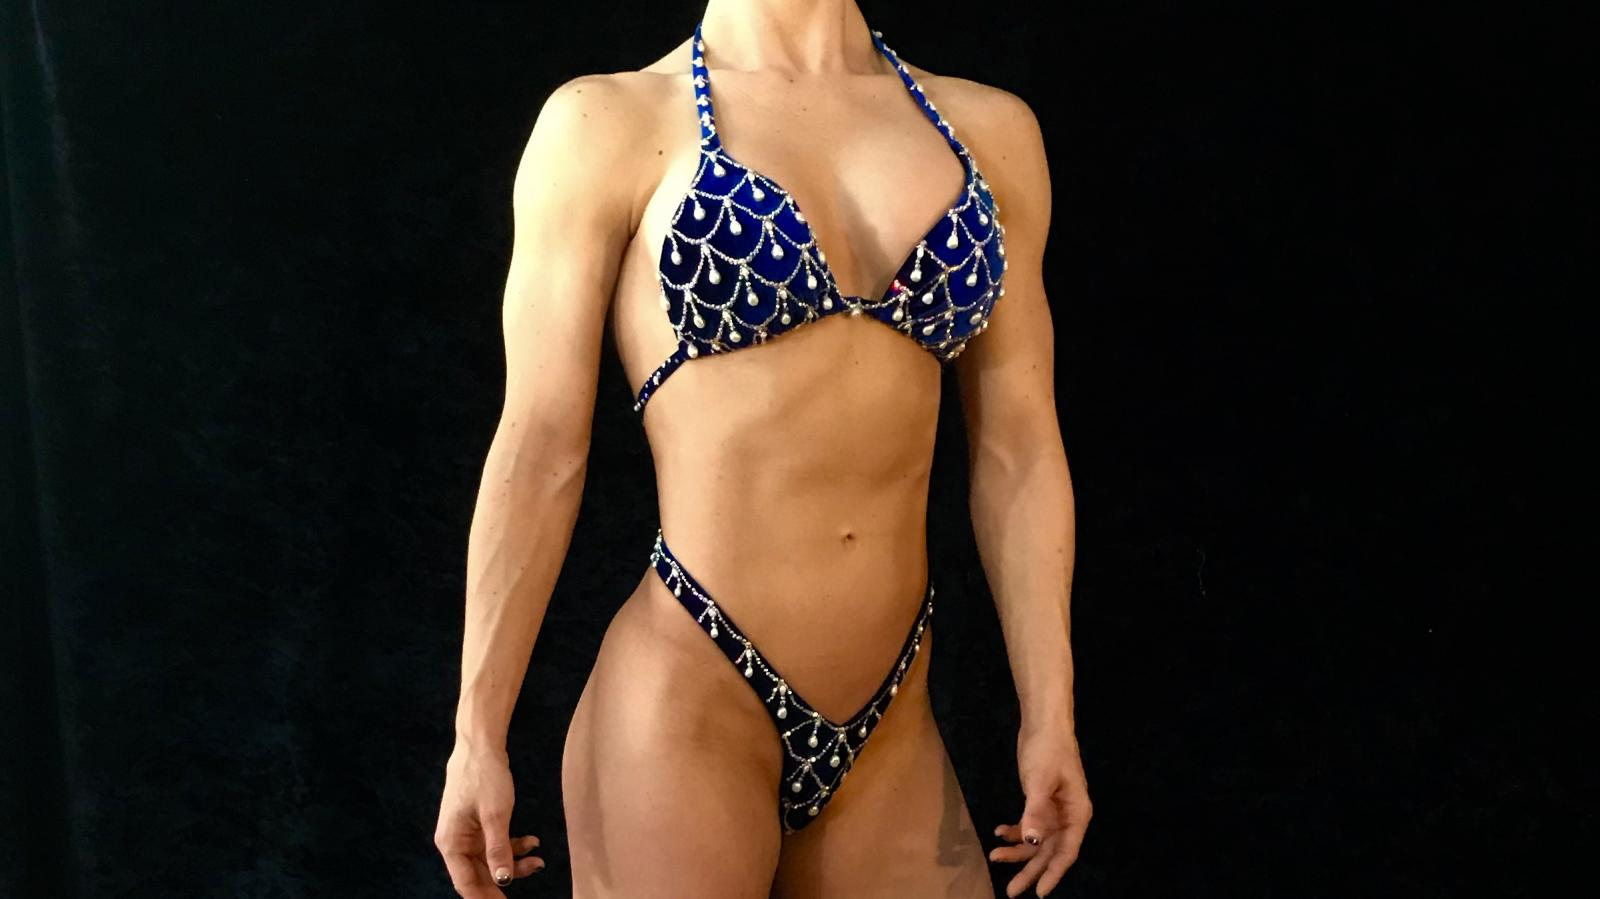 Royal Blue Chandelier Two-Piece Competition Suit by Merry Christine Bodywear